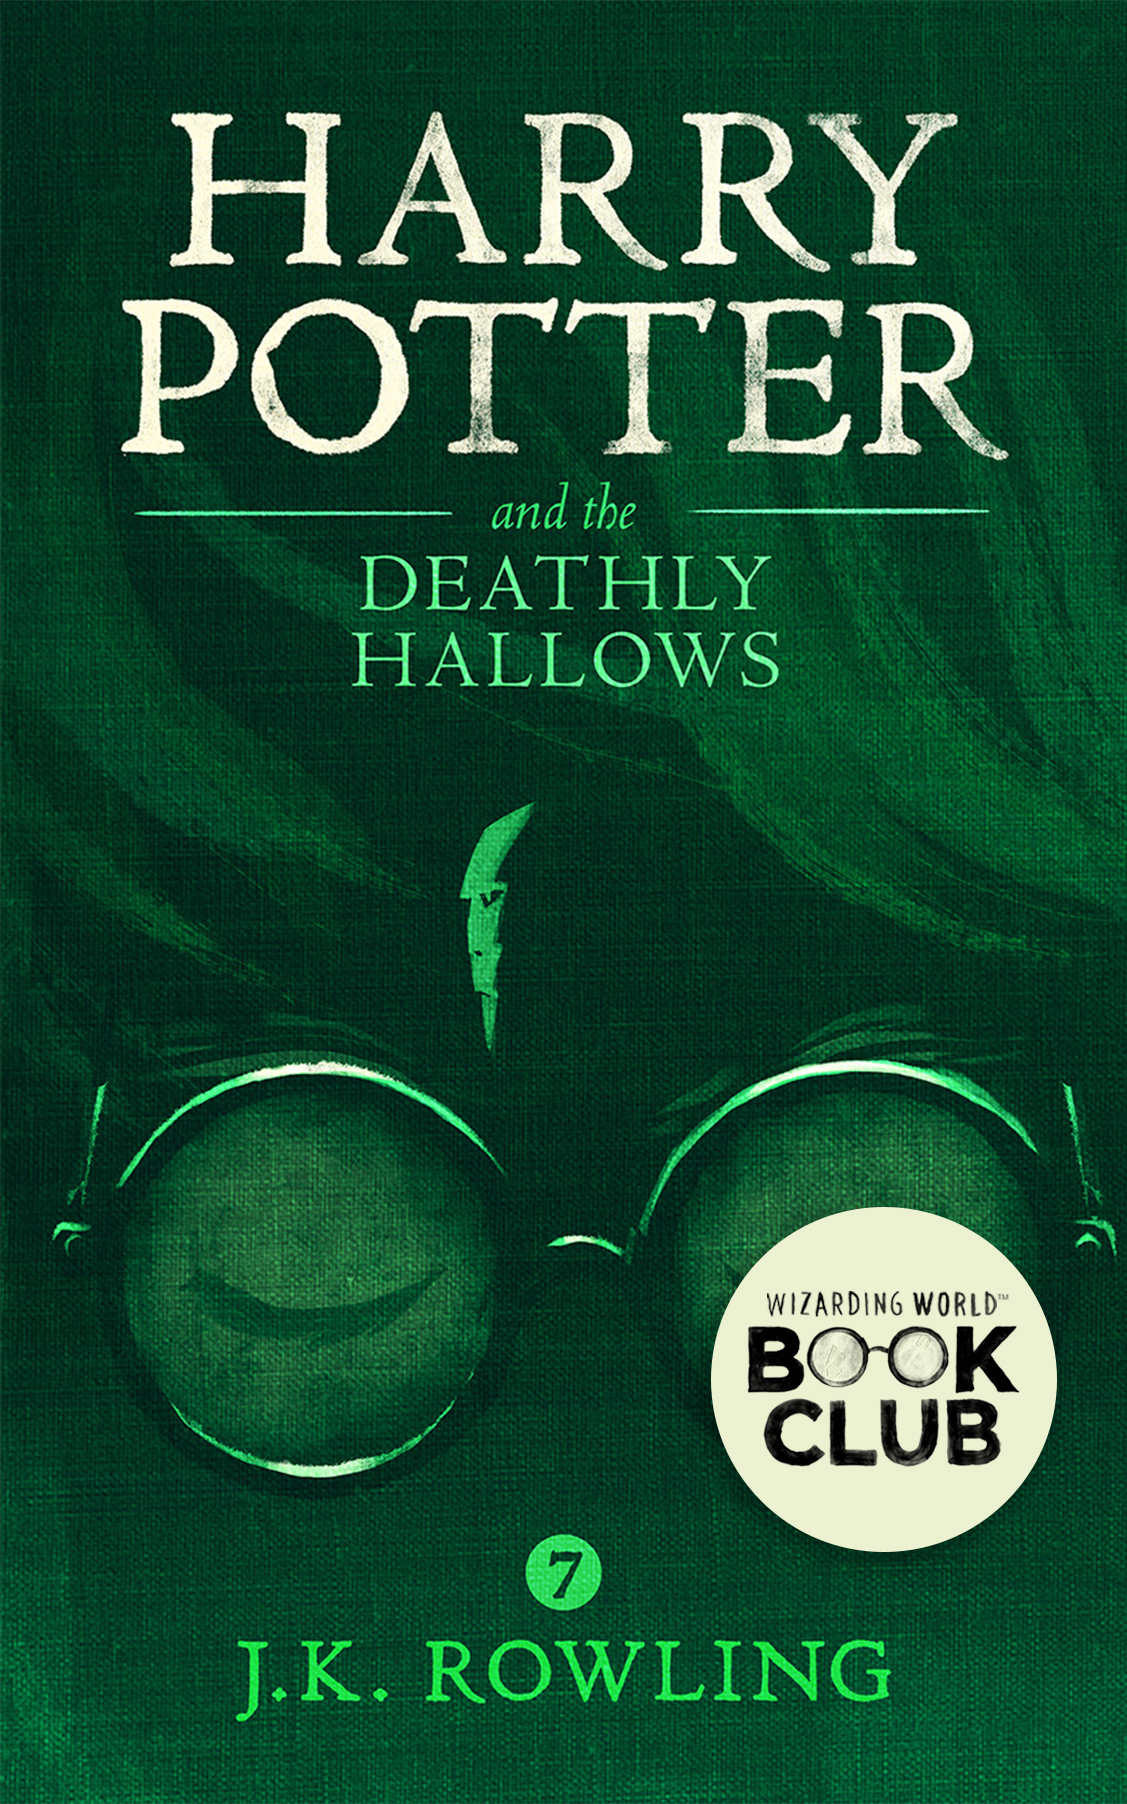 Harry Potter and the Deathly Hallows | Rowling, J.K.